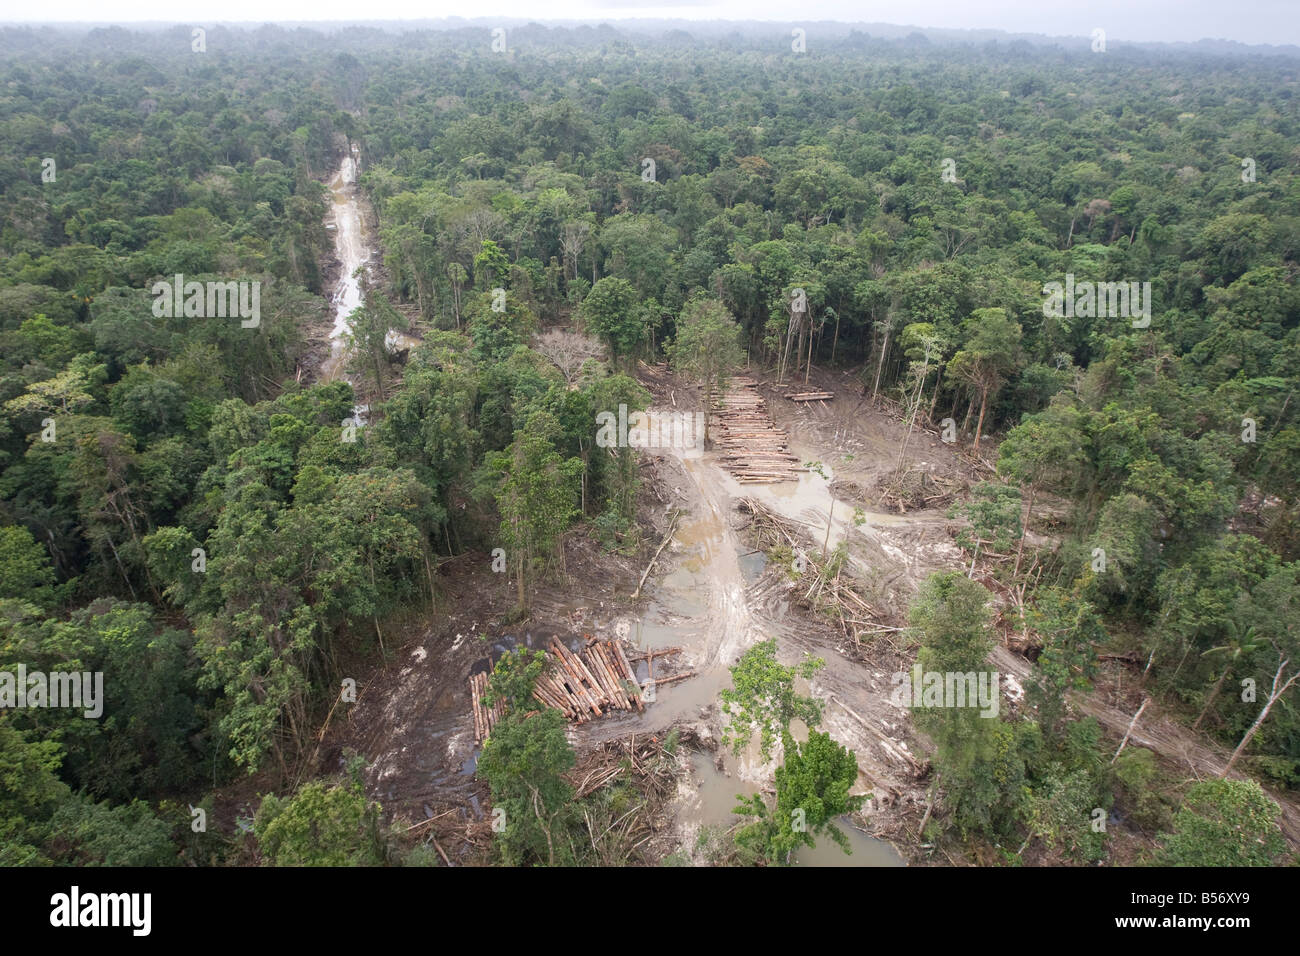 Area known as 16km in the rainforests of the Turama extension logging concession,Gulf Province, Papua New Guinea. - Stock Image